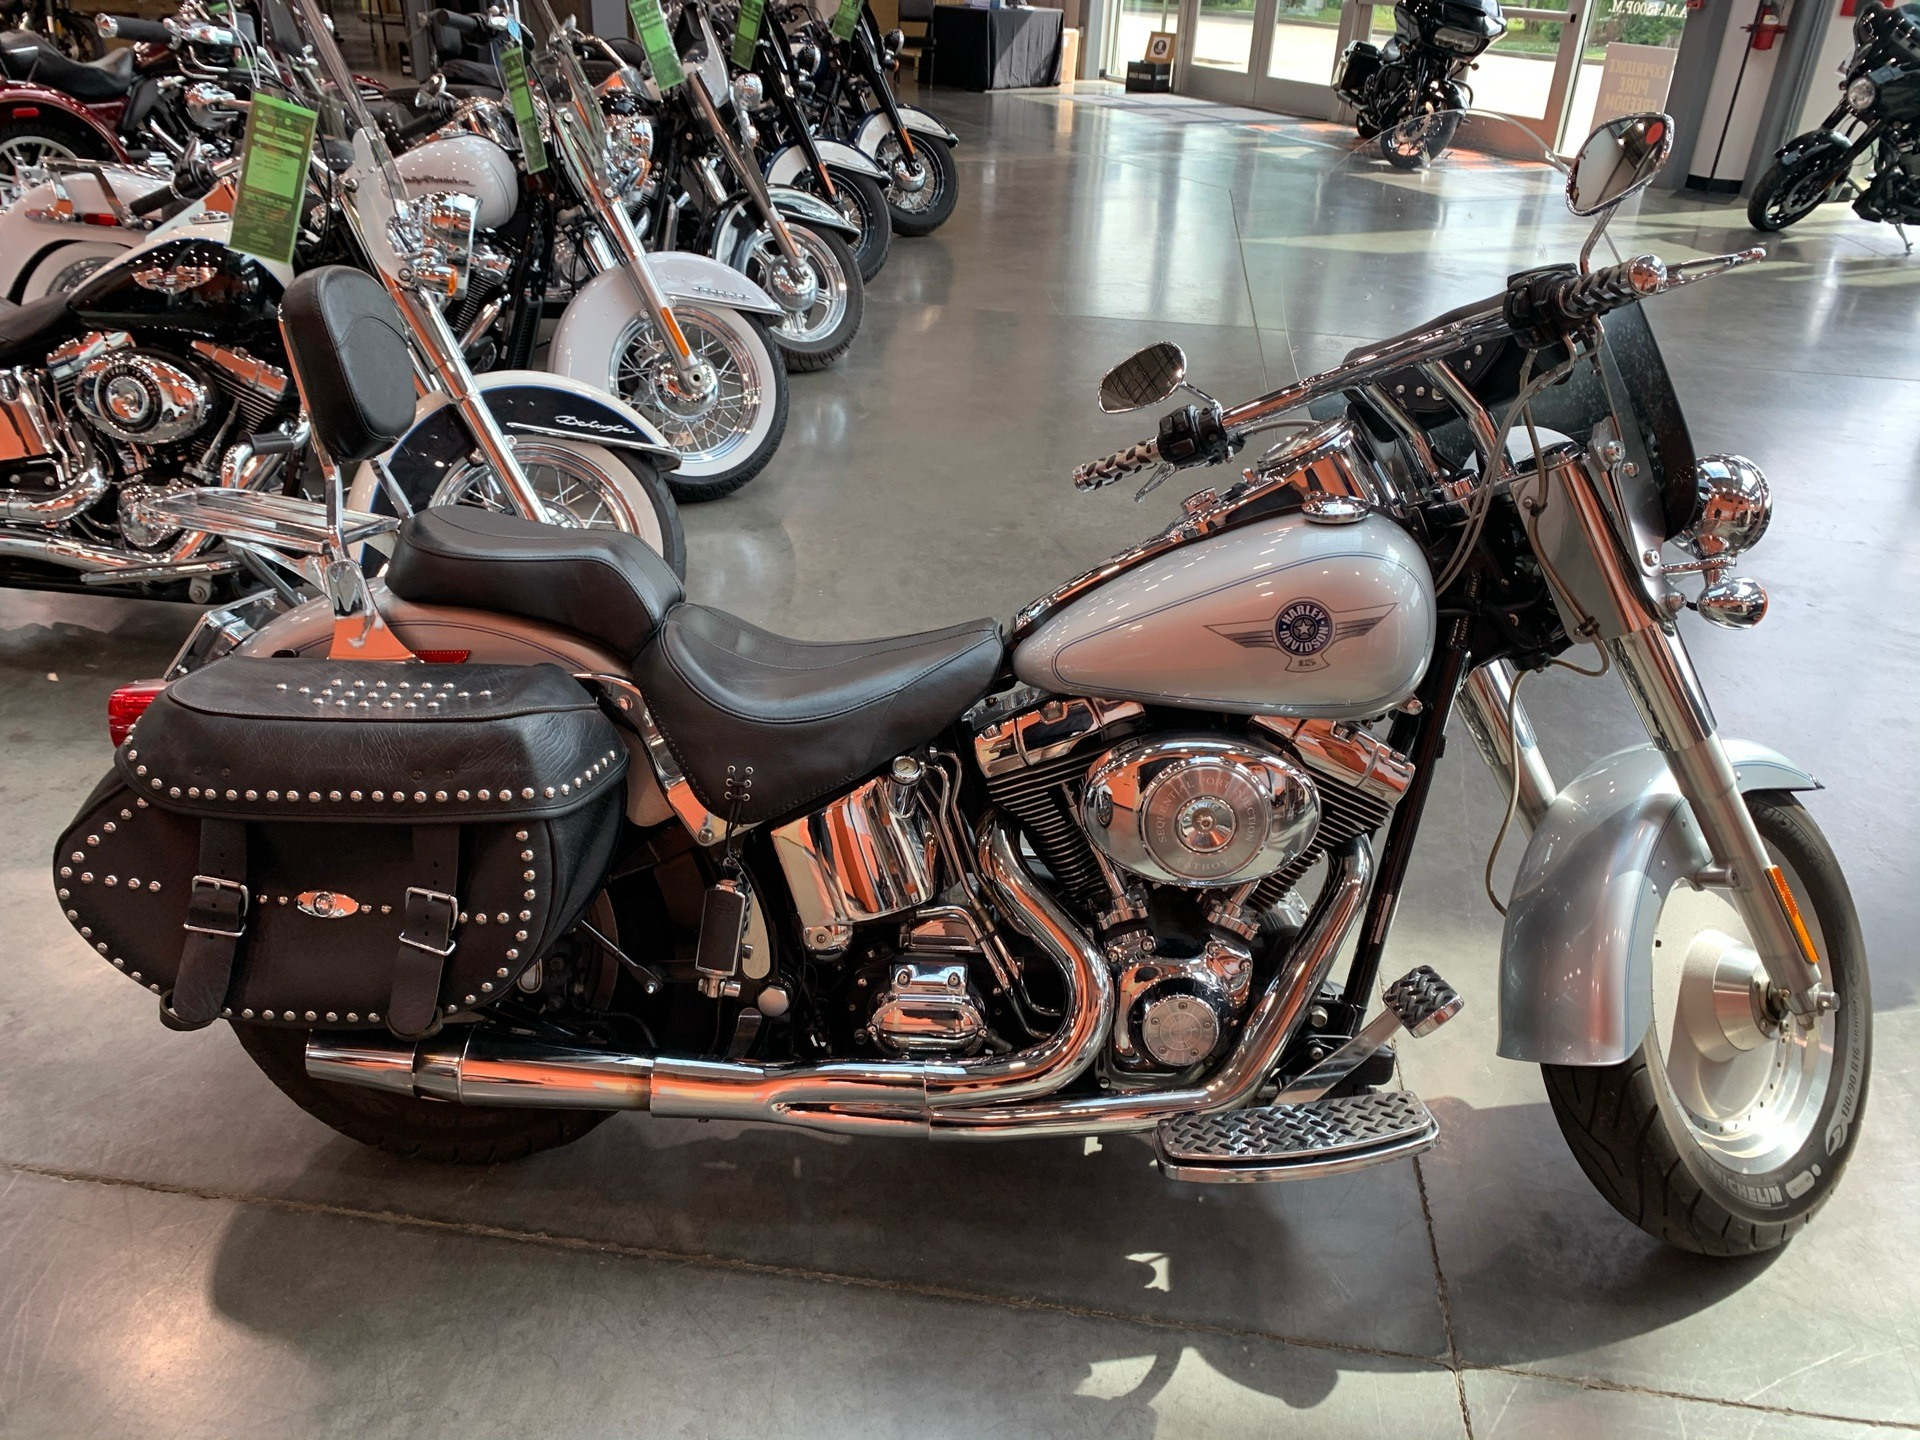 2005 Harley-Davidson FAT BOY in Columbia, Tennessee - Photo 1